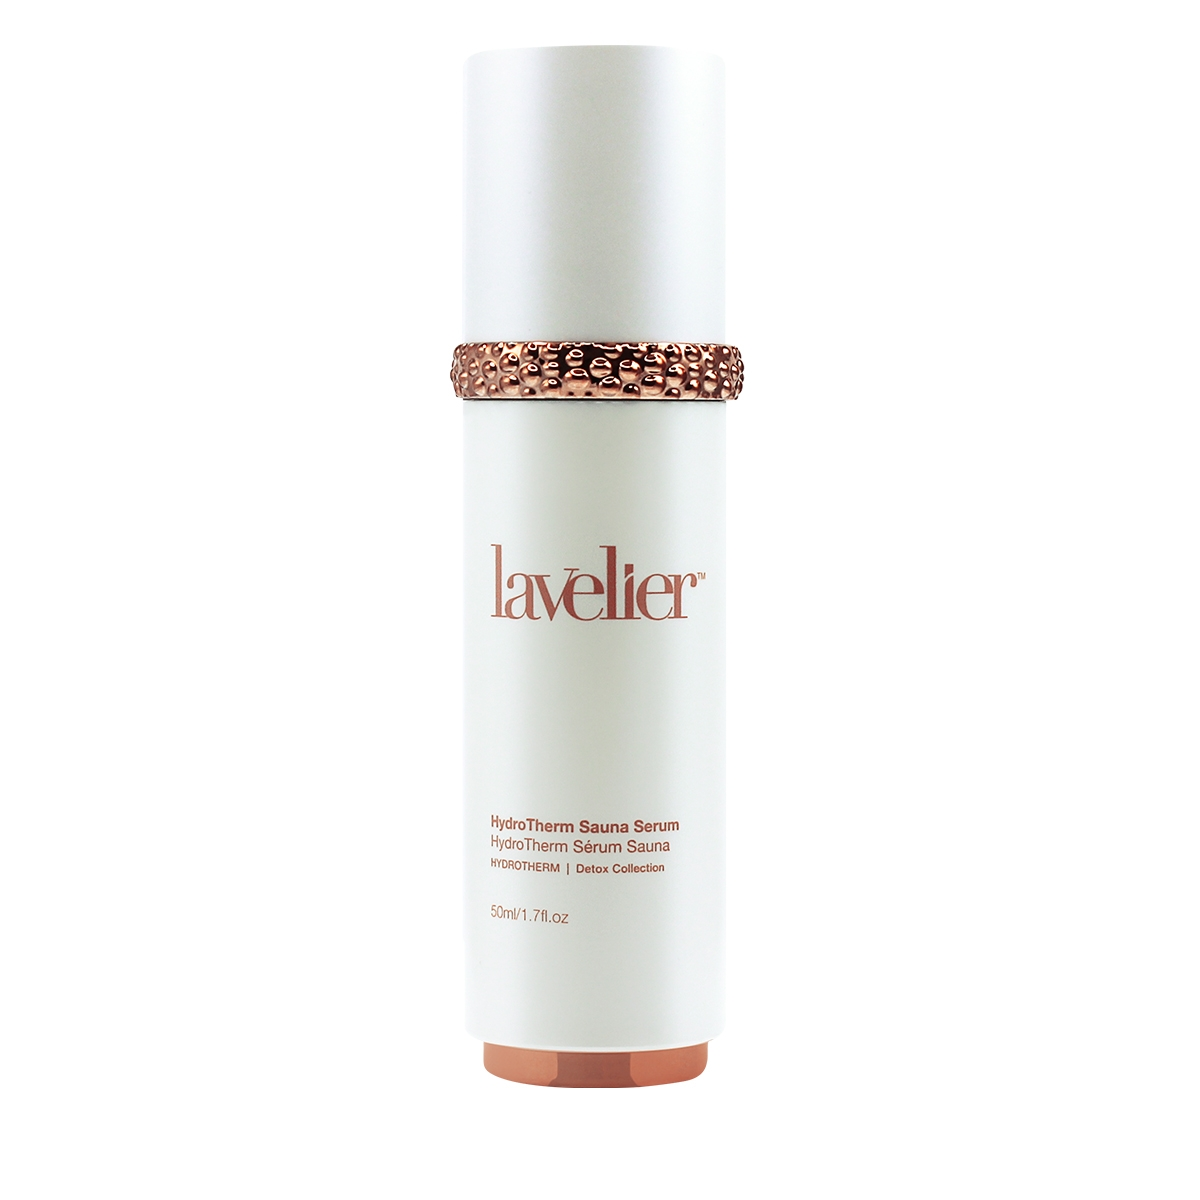 Lavelier Hydrotherm Sauna Serum Bottle